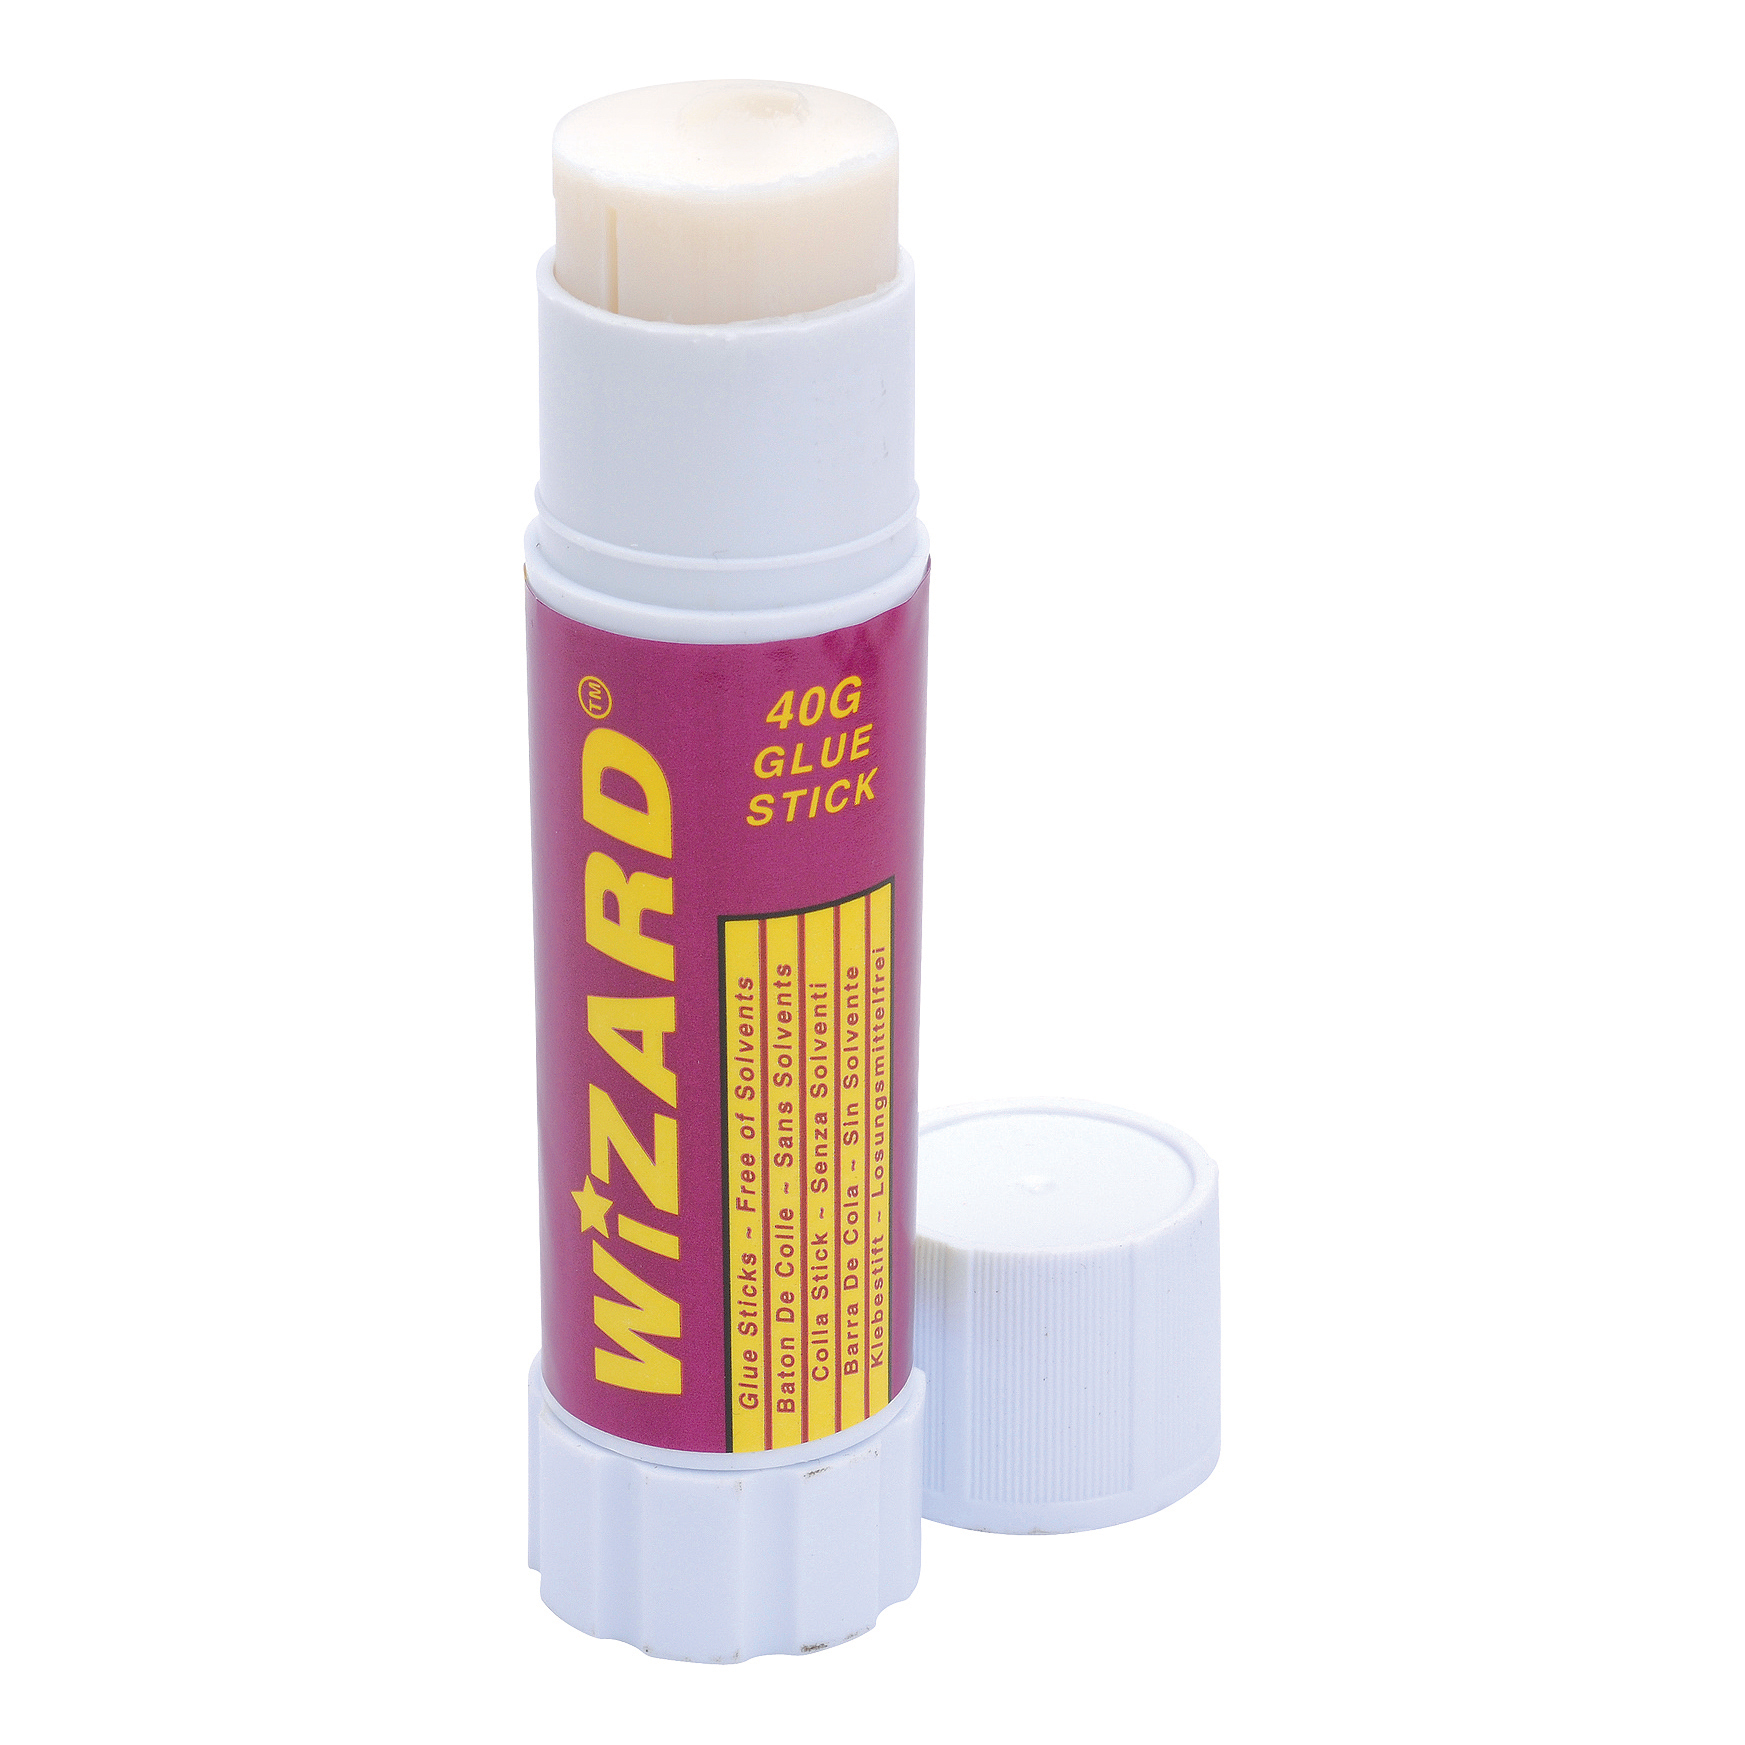 Image for 5 Star Value Glue Stick 40gm